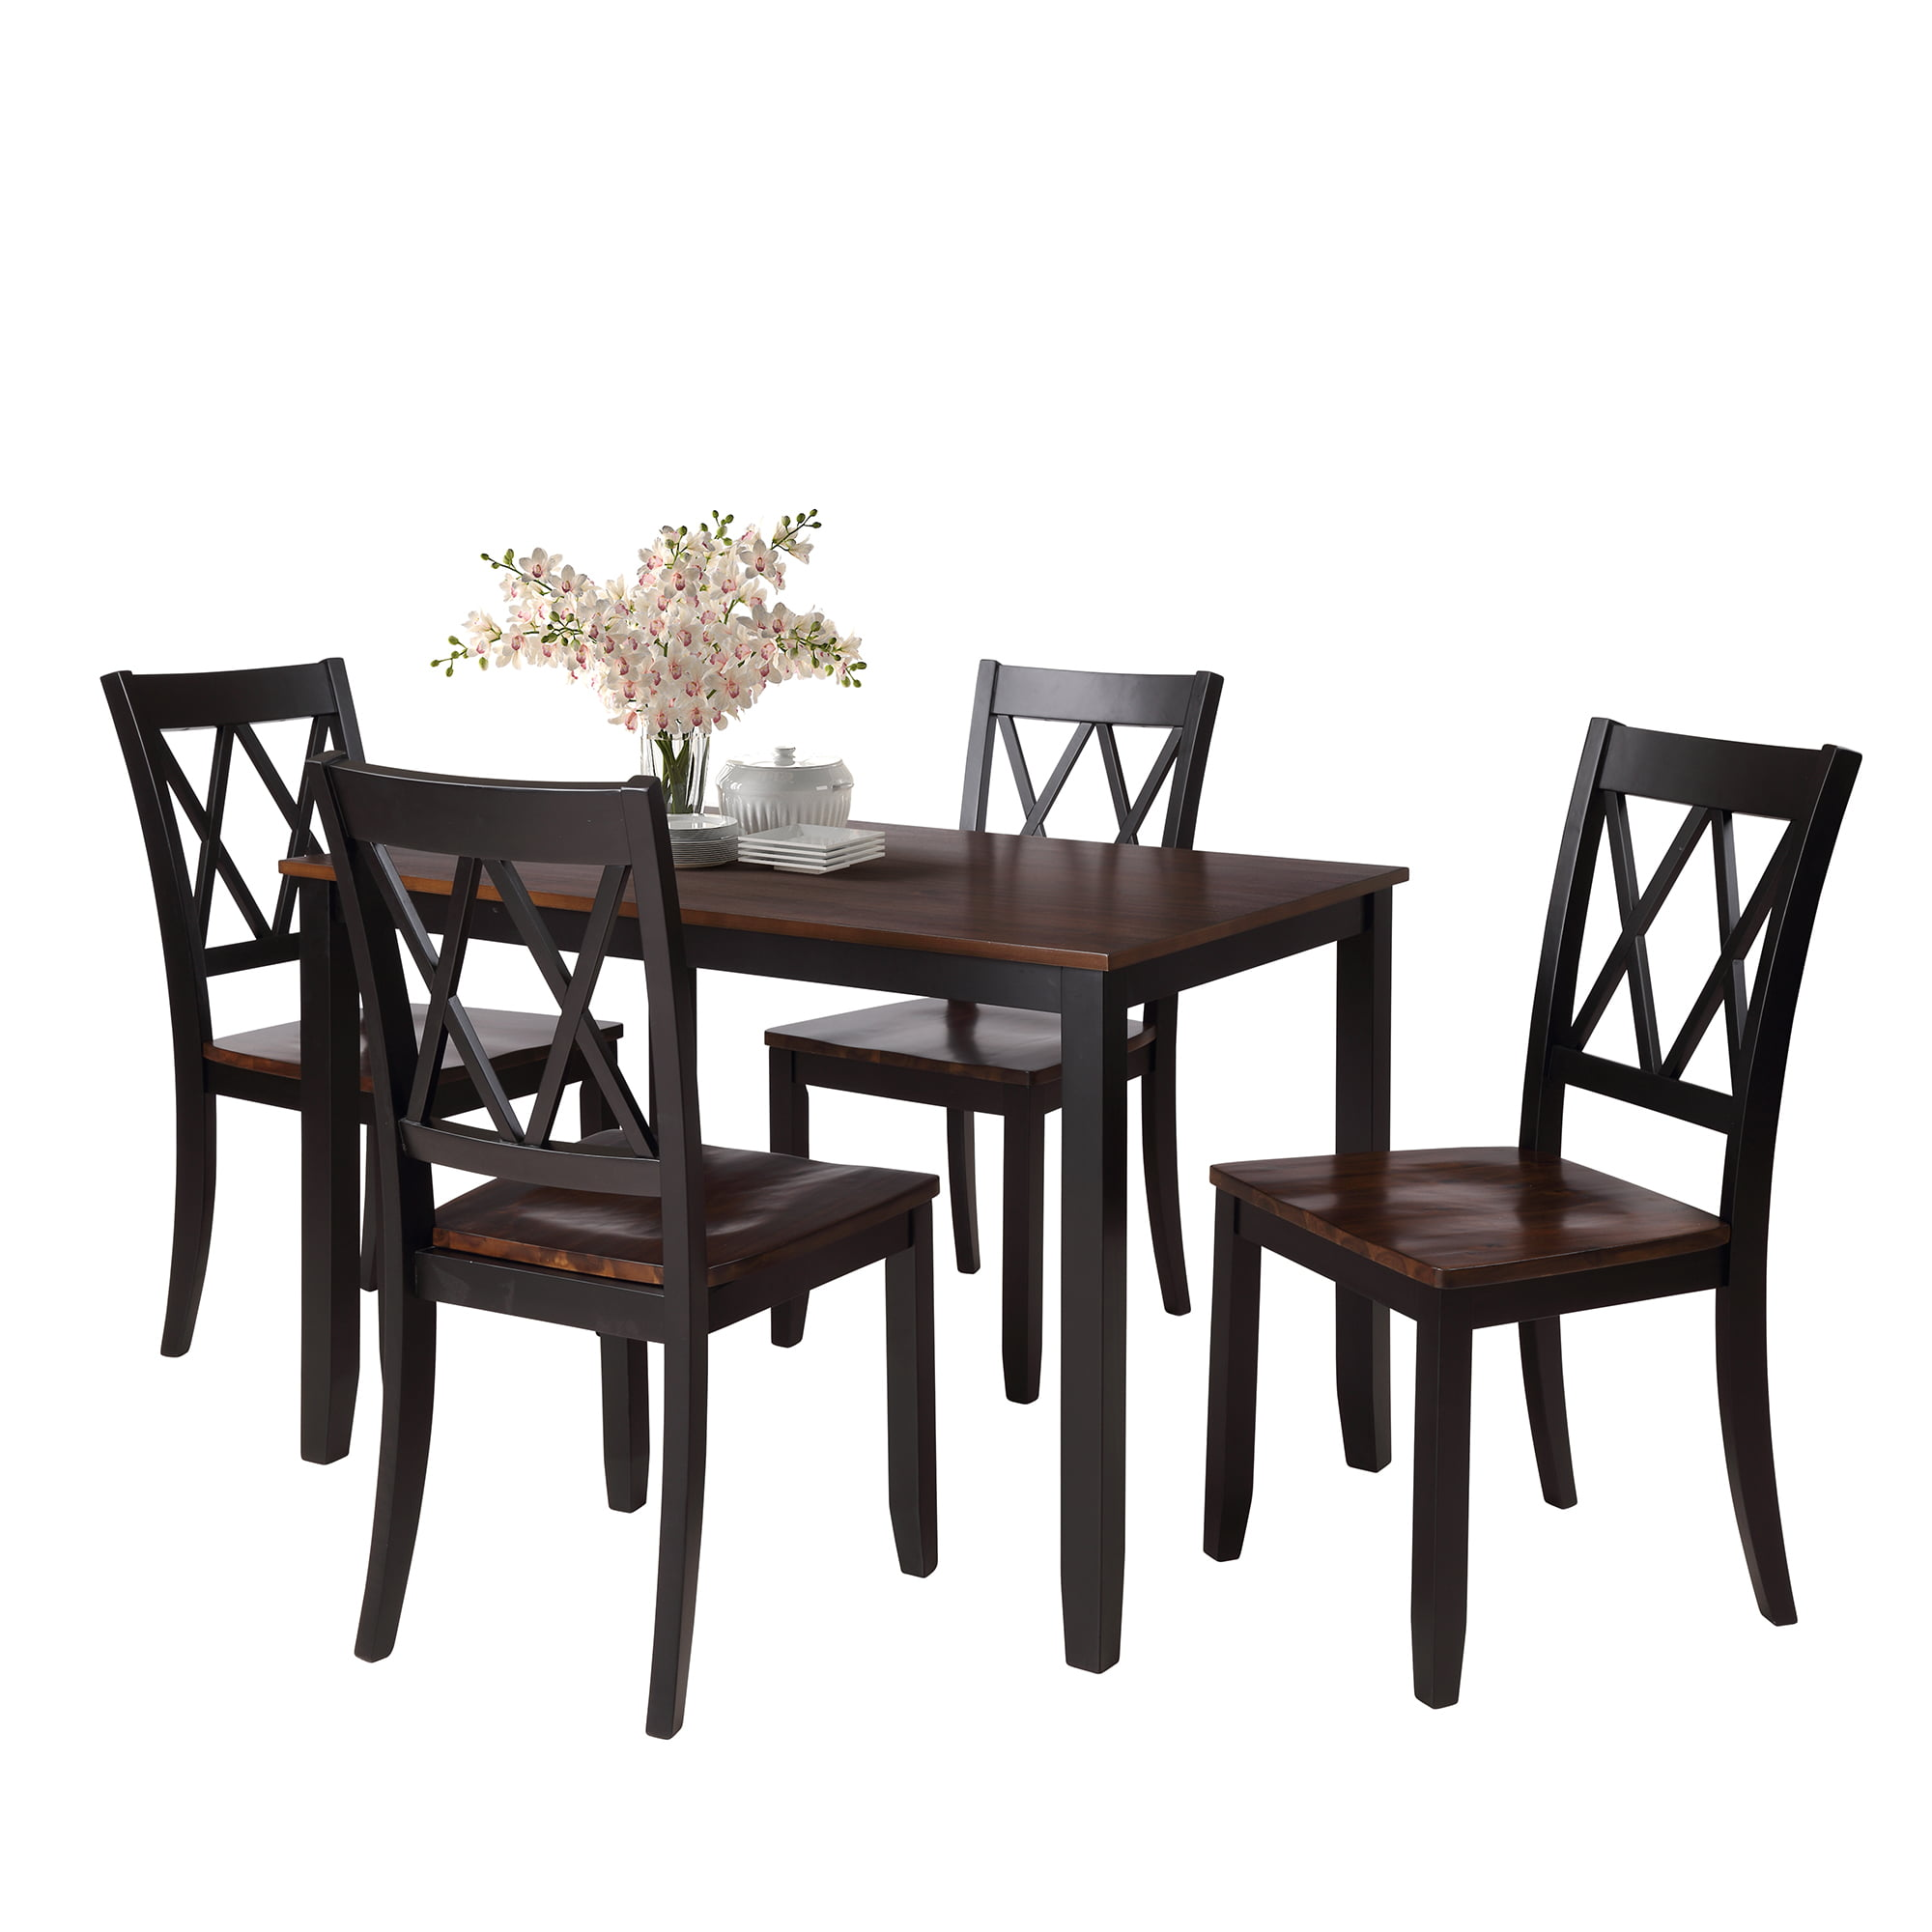 9 Piece Kitchen Table Set, Modern Dining Table Sets with Dining Chairs for  9, Heavy Duty Wooden Rectangular Dining Room Table Set with Black Finish ...